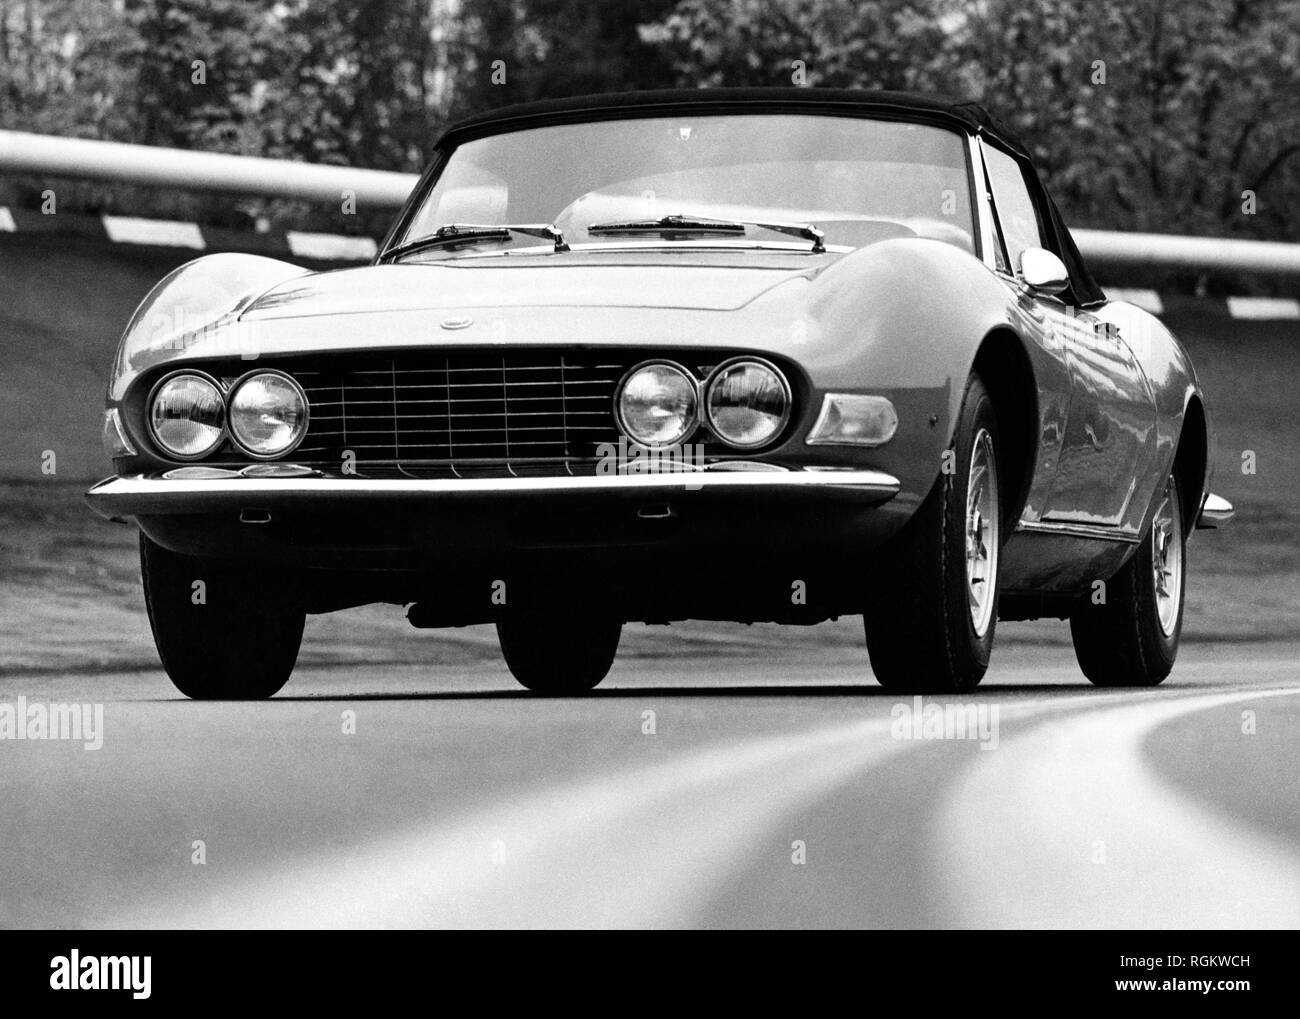 Fiat Dino Sports High Resolution Stock Photography And Images Alamy